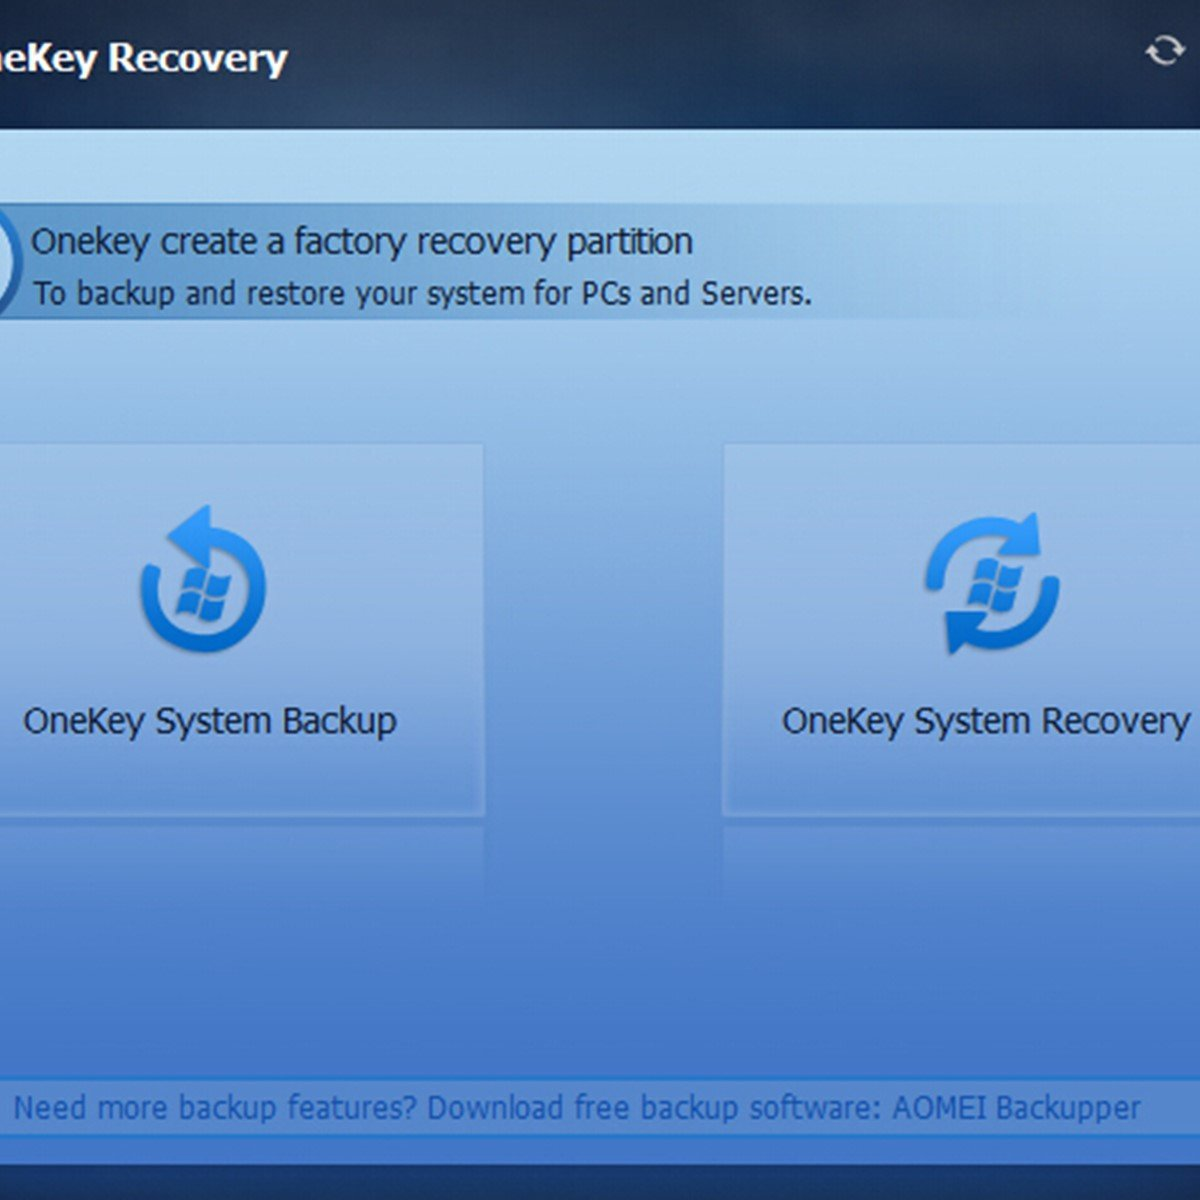 AOMEI OneKey Recovery Alternatives and Similar Software